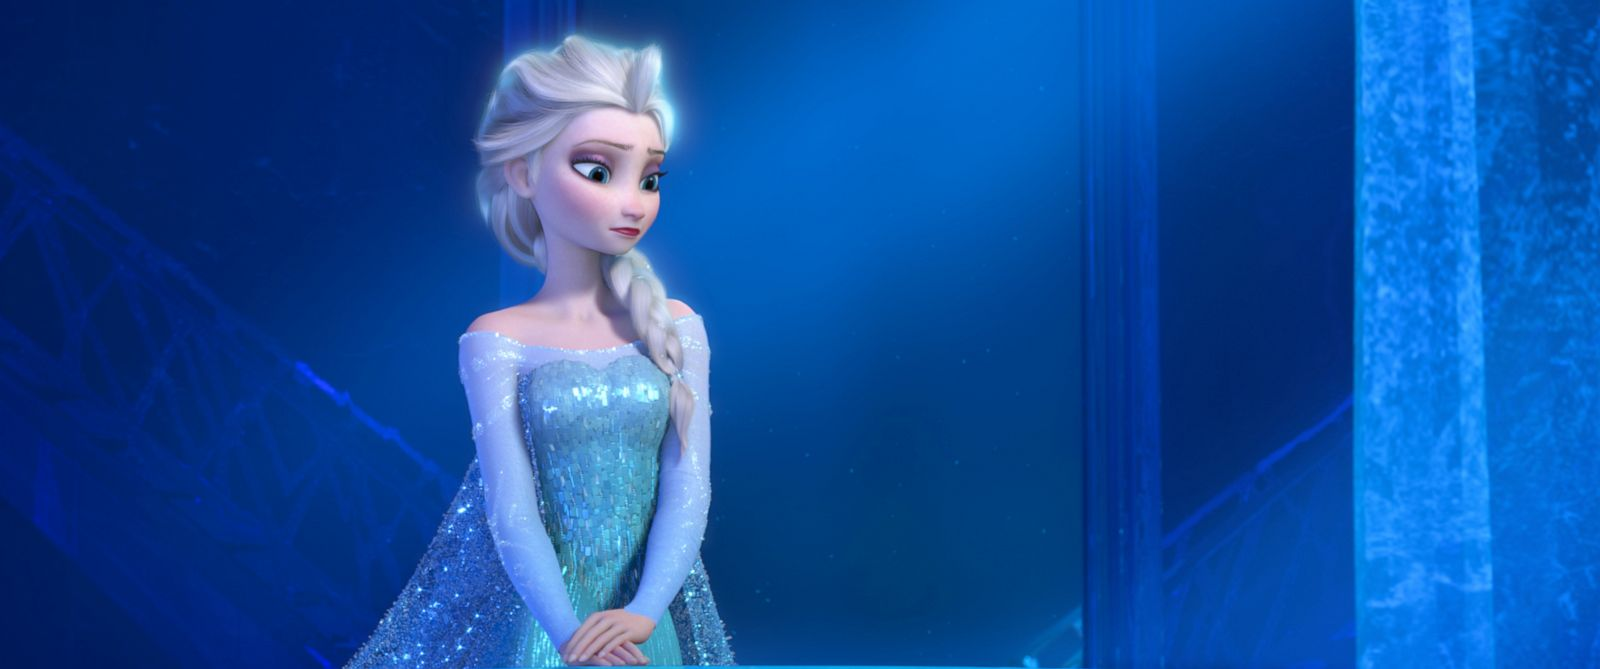 "PHOTO: Elsa the Snow Queen, voiced by Idina Menzel, in a scene from the animated feature ""Frozen."""